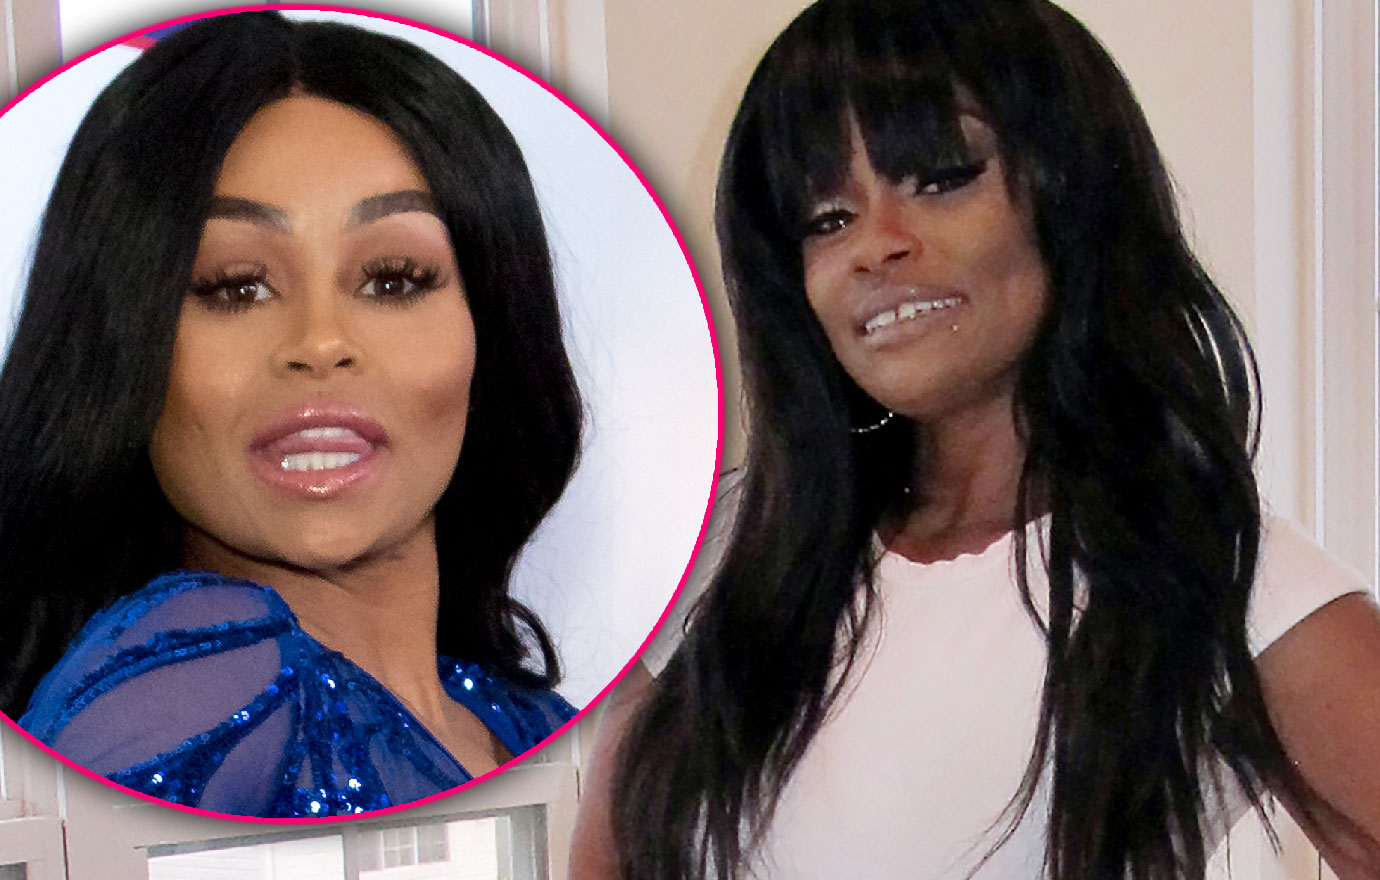 Blac Chyna Reveals Her Mom's New Reality Show: 'Tokyo Toni Finding Love ASAP' - See The Trailer